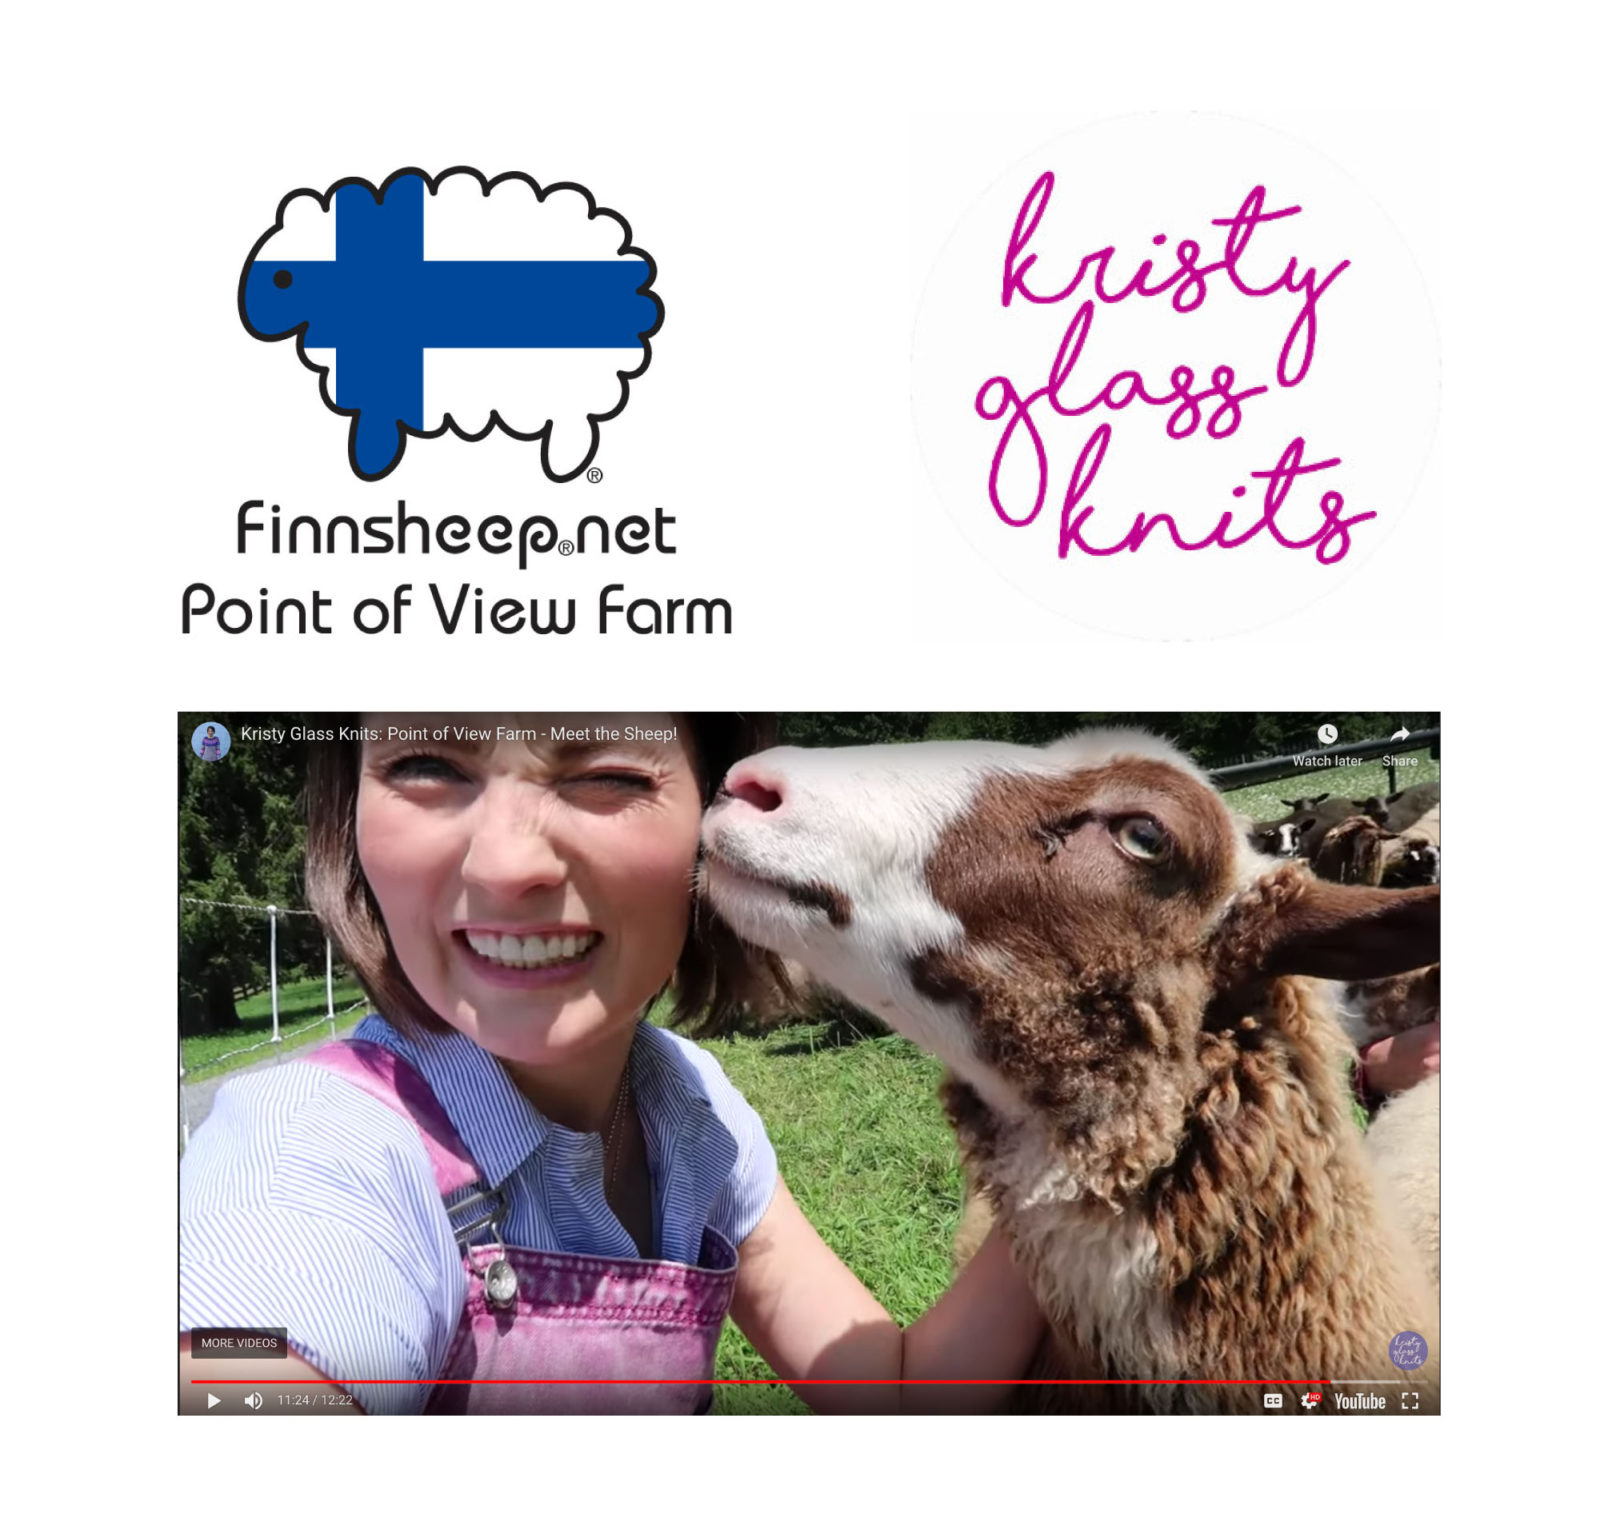 Kristy Glass Knits visits Point of View Farm Finnsheep.net video preview